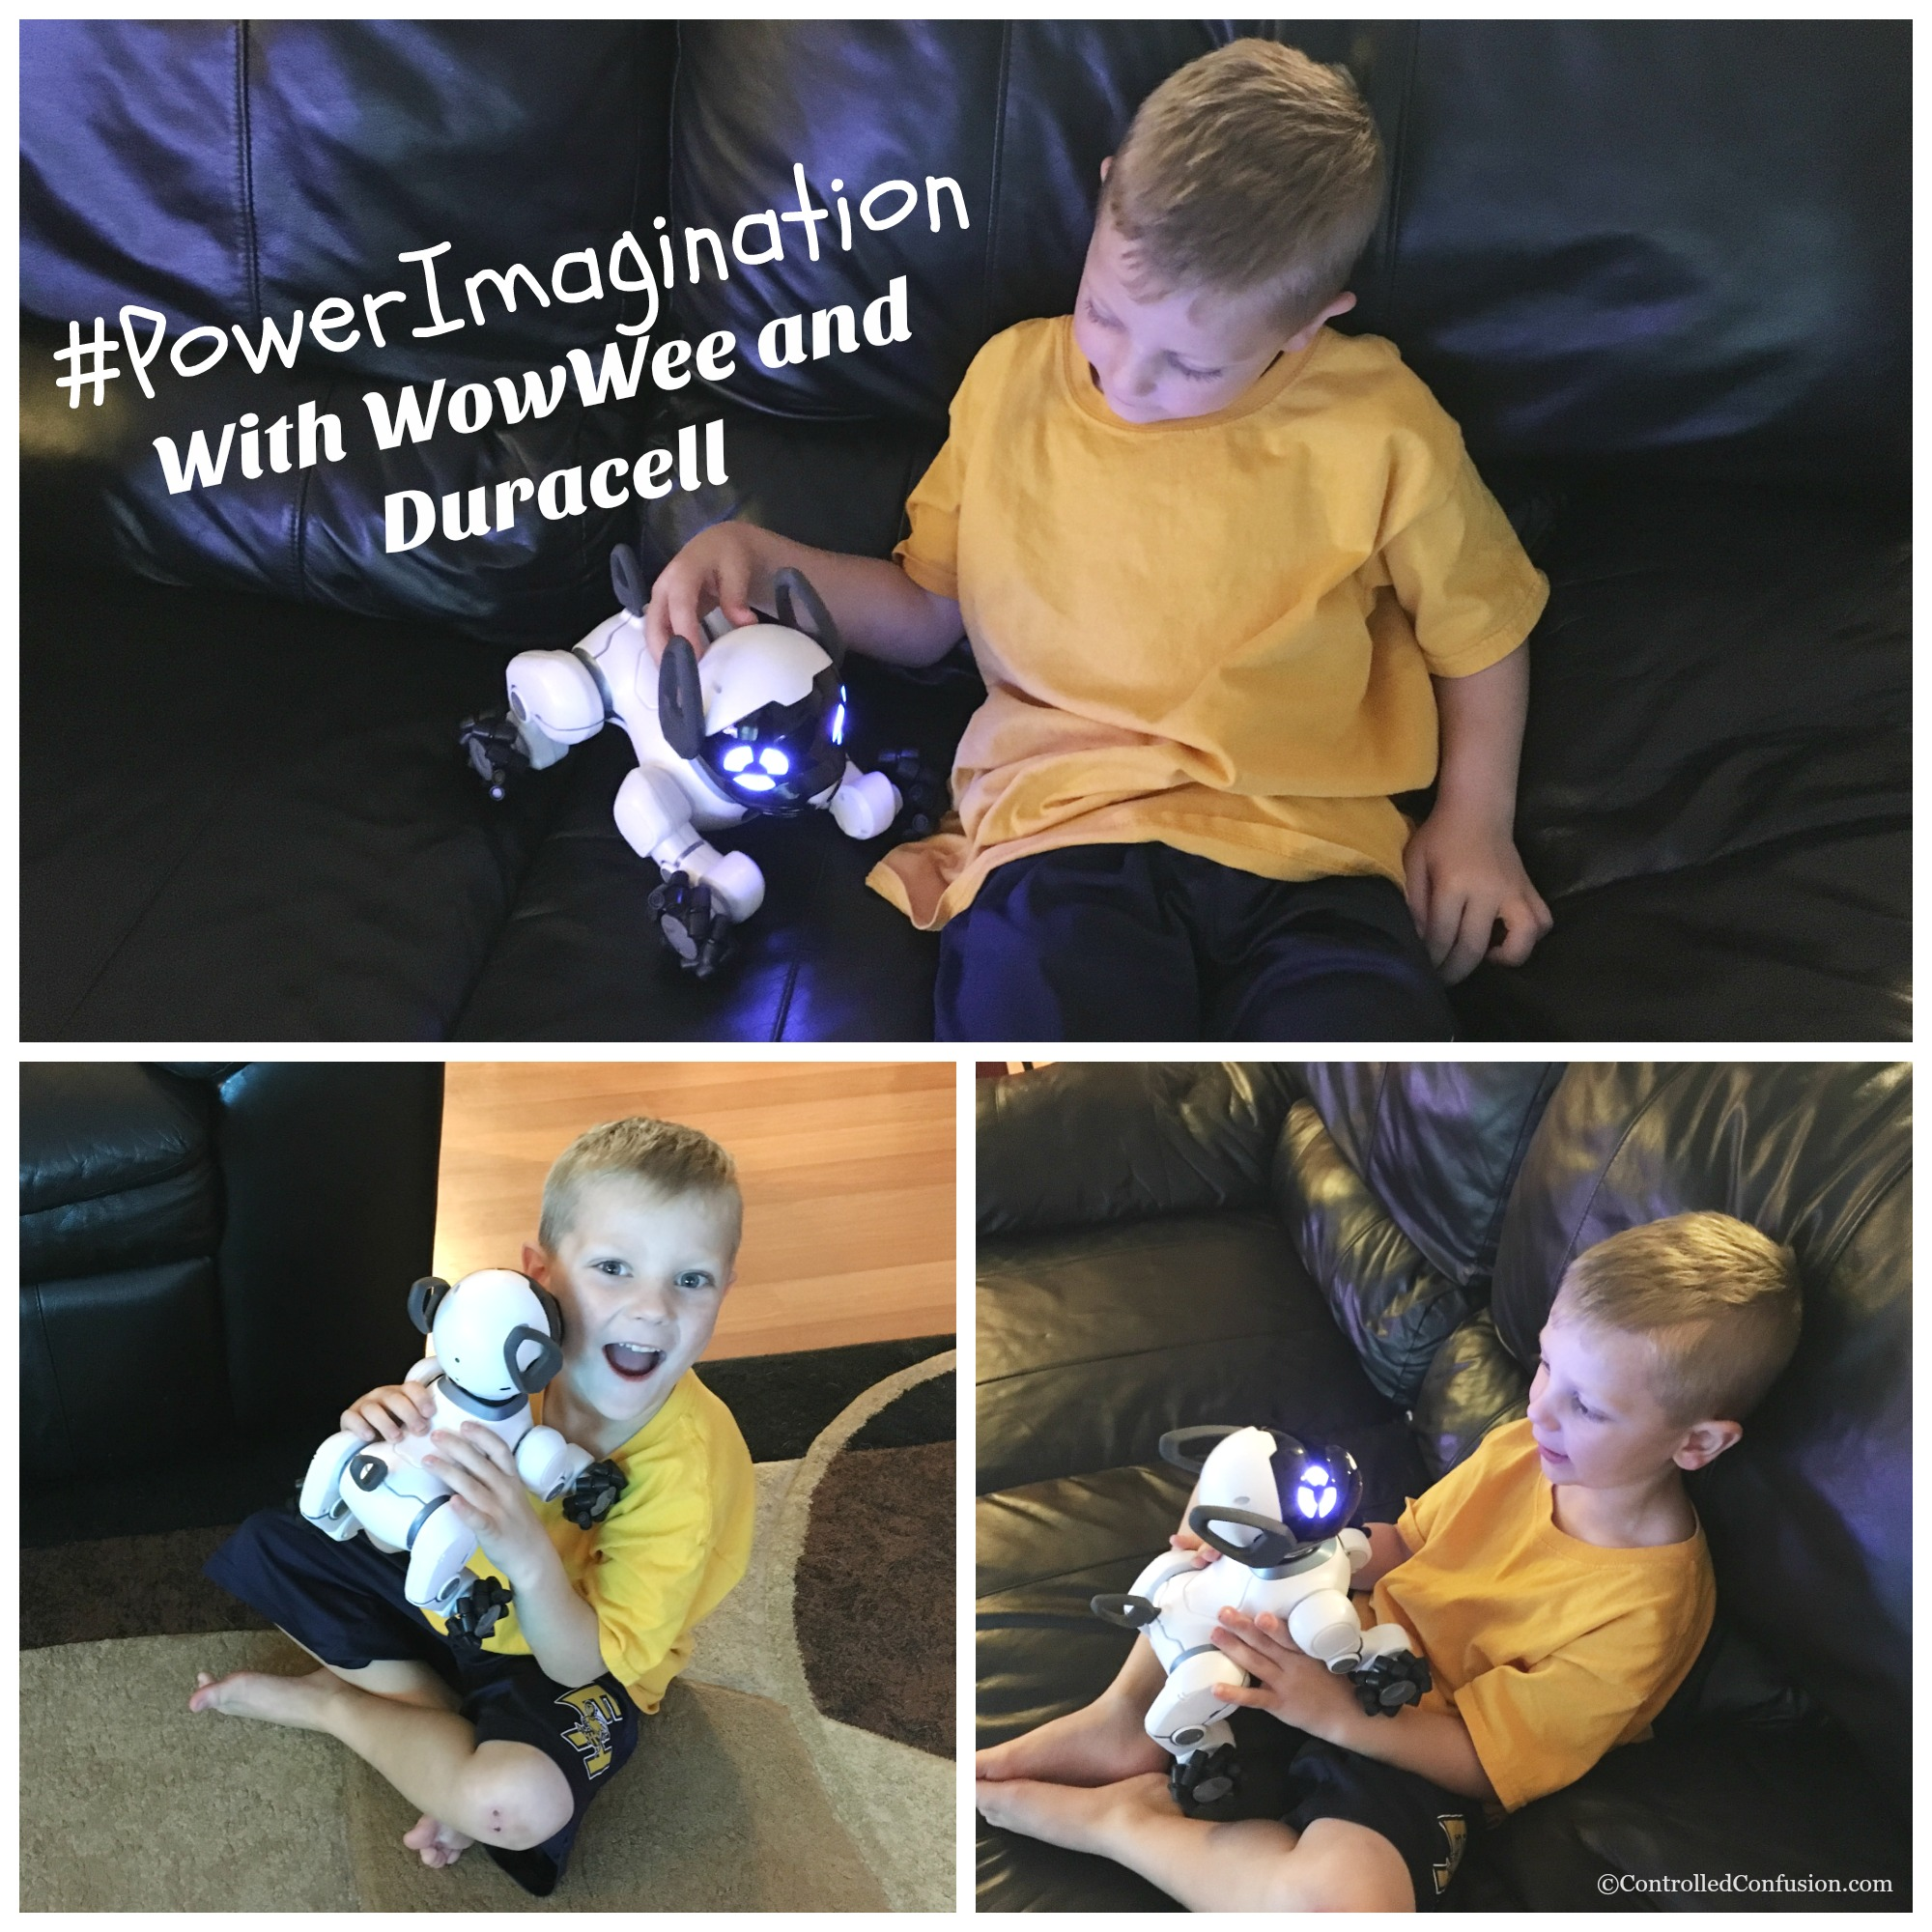 Power Imagination With WowWee and Duracell